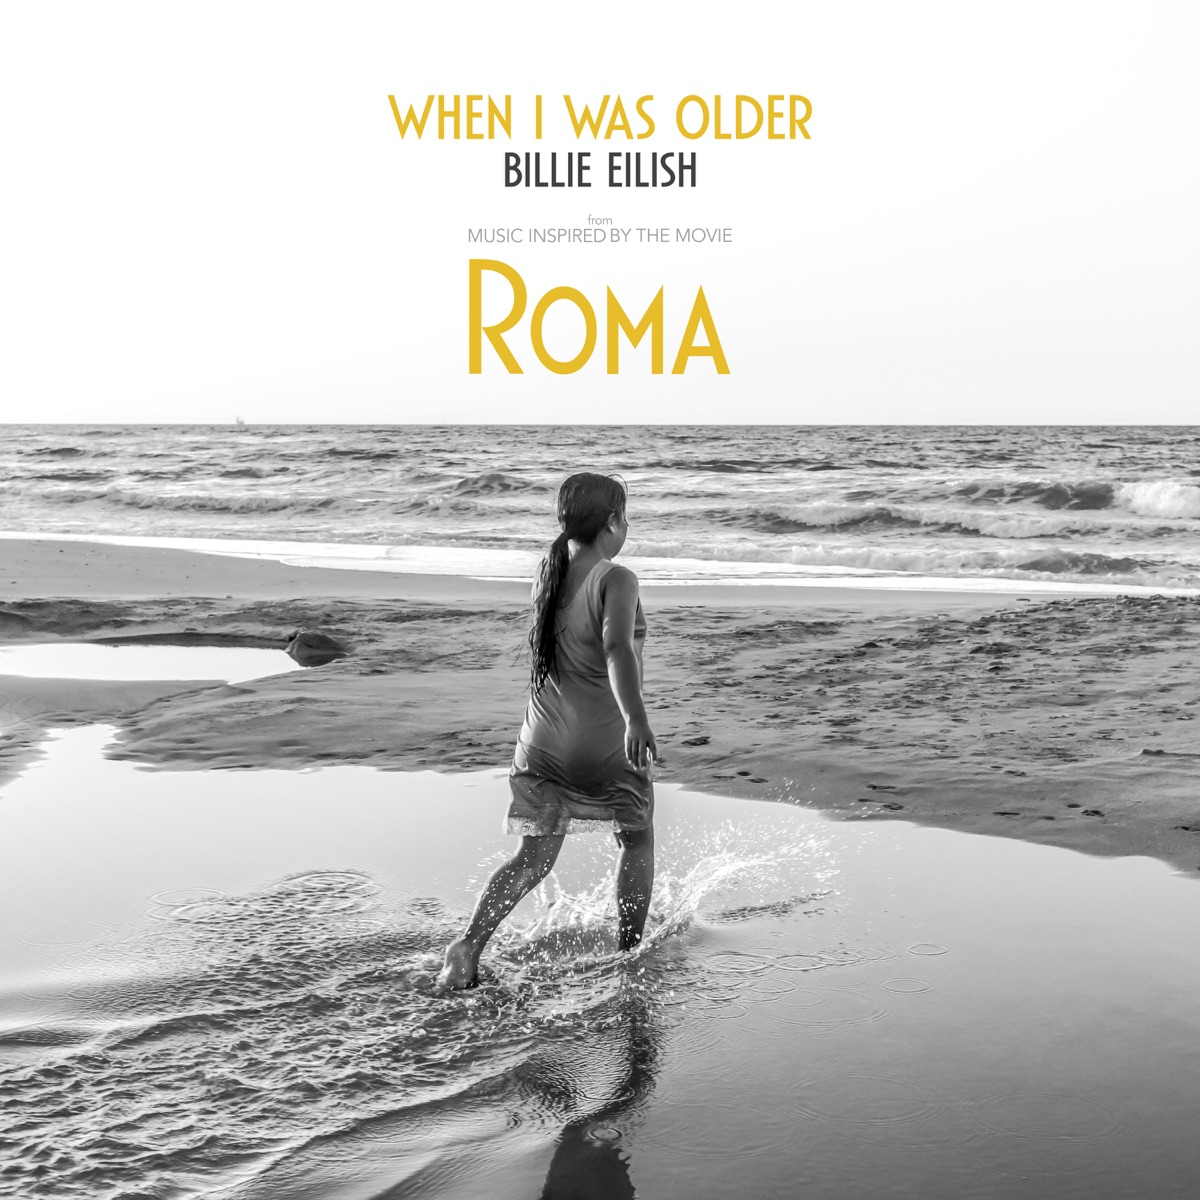 WHEN I WAS OLDER Music Inspired by the Film ROMA - Single Billie Eilish CD cover